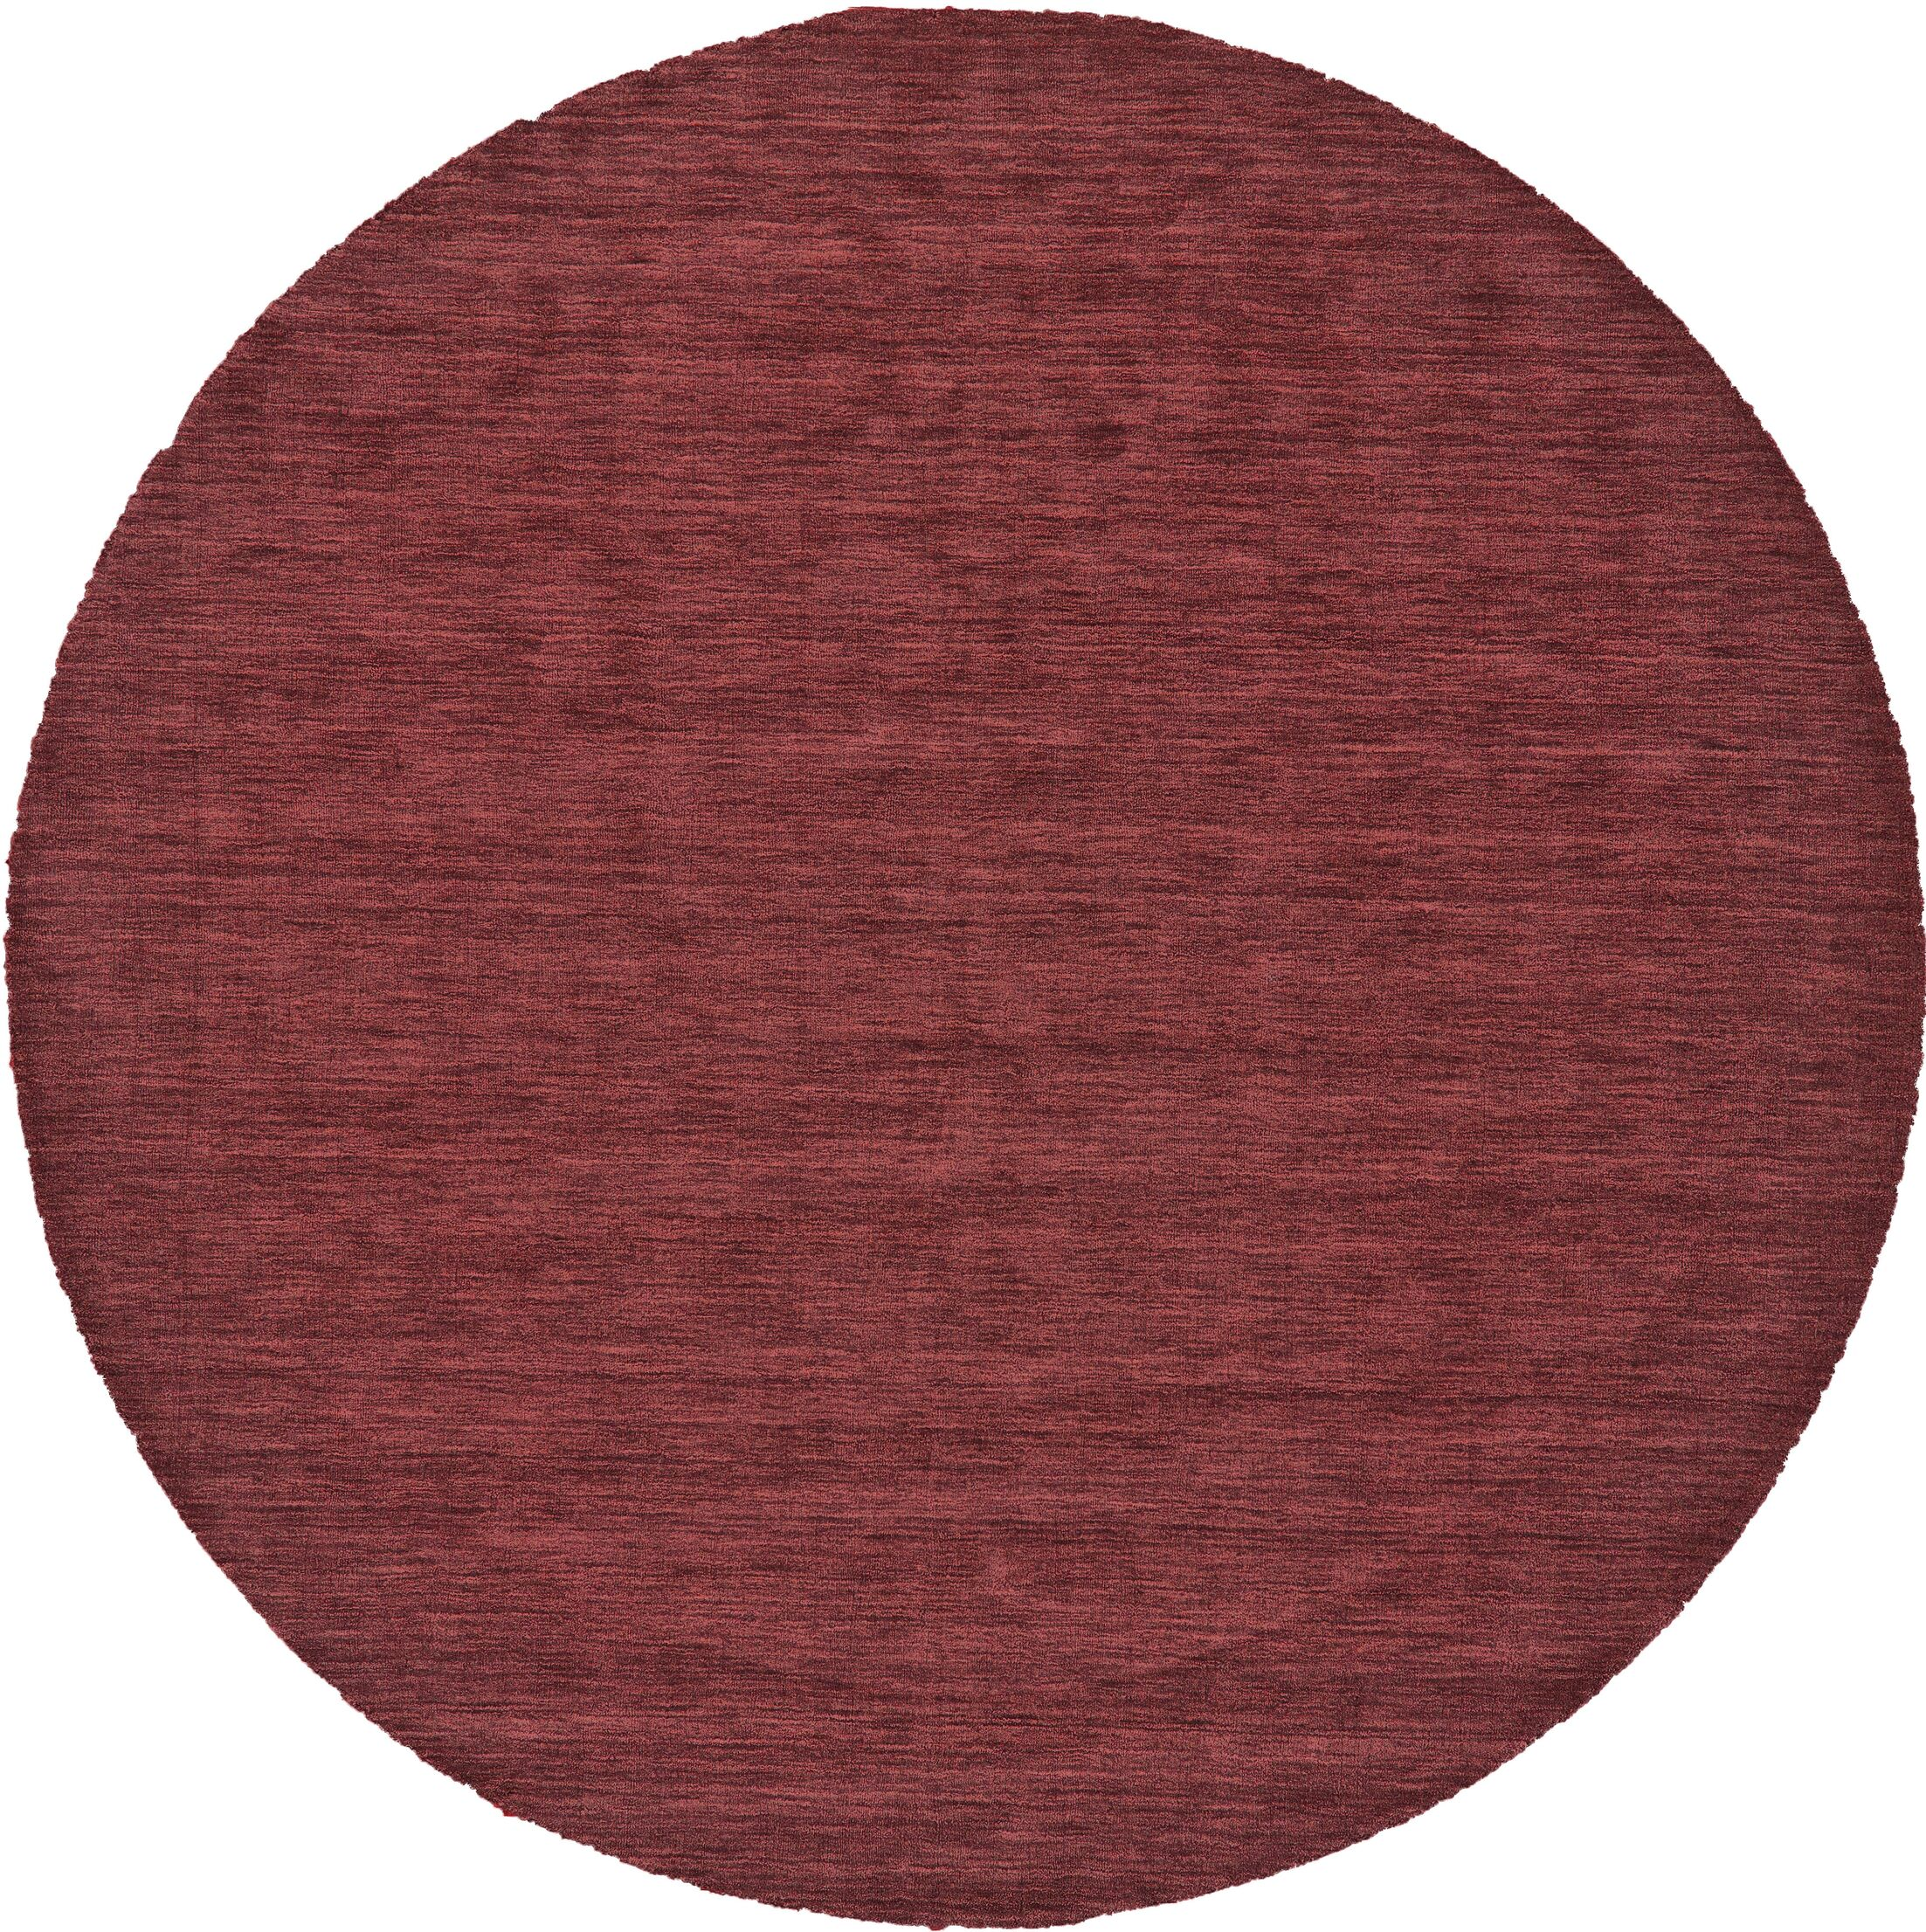 Richardson Hand-Loomed Red Area Rug Rug Size: Round 10'